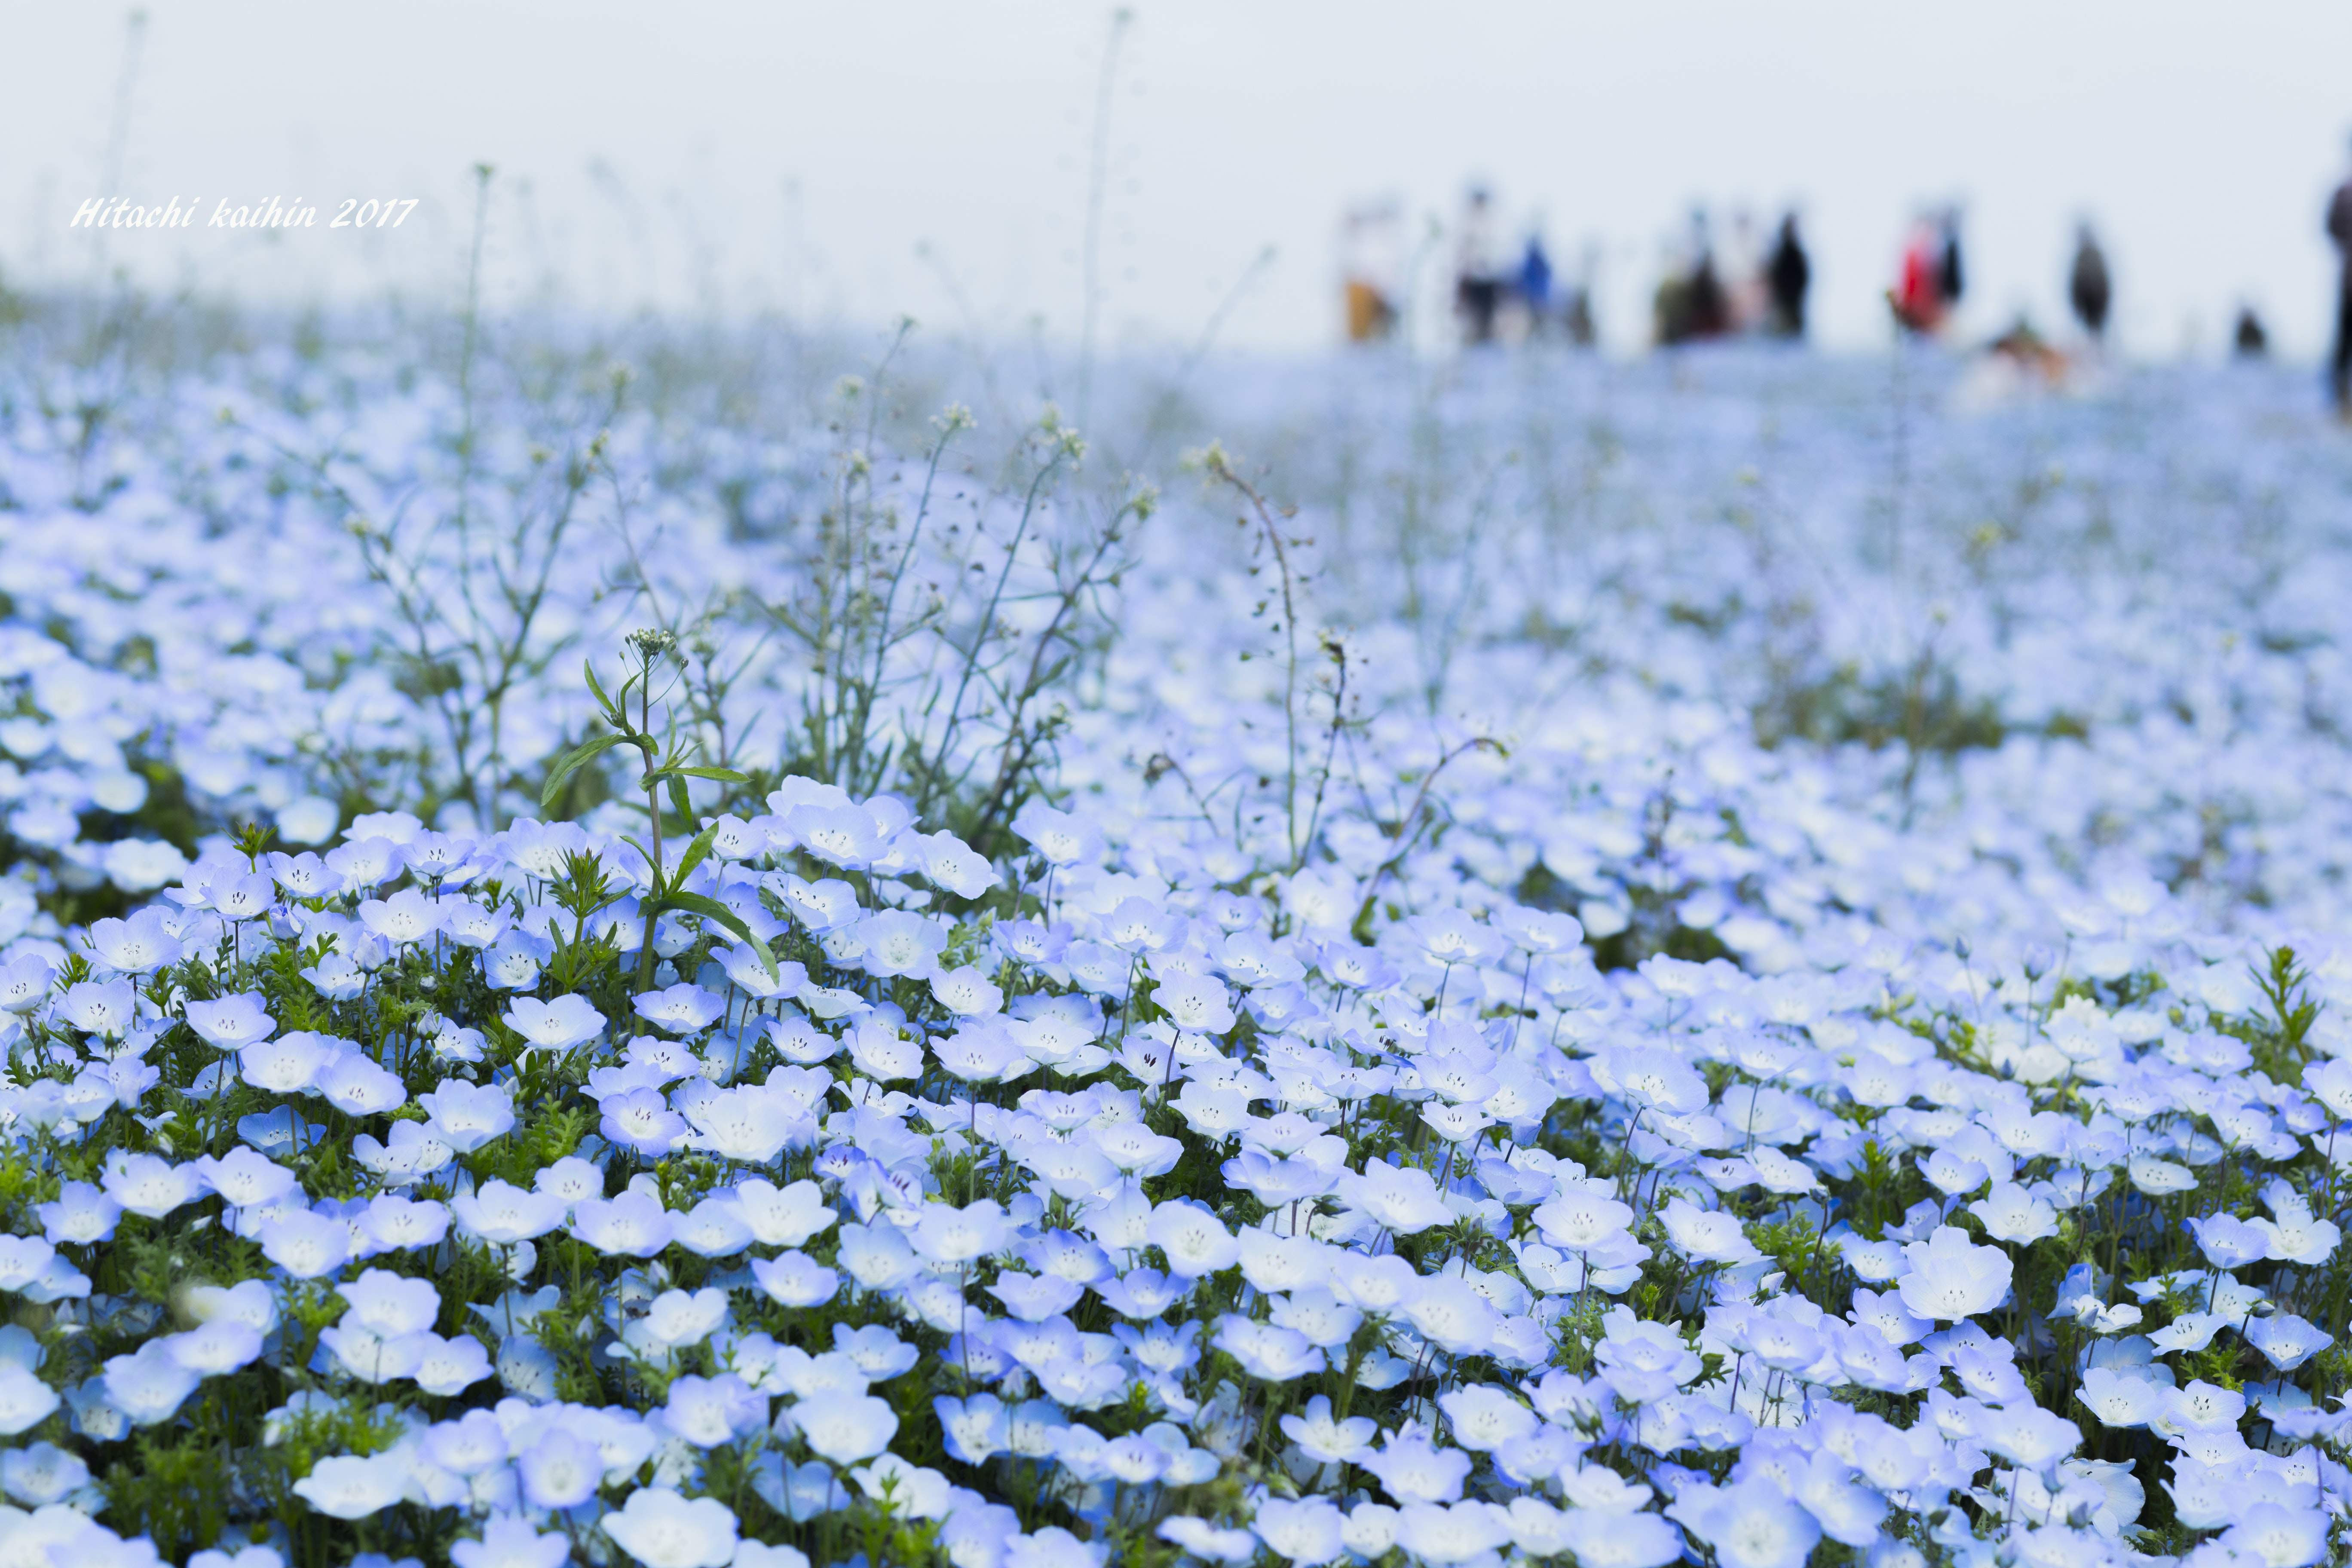 people standing near blue flower field in selective focus photography